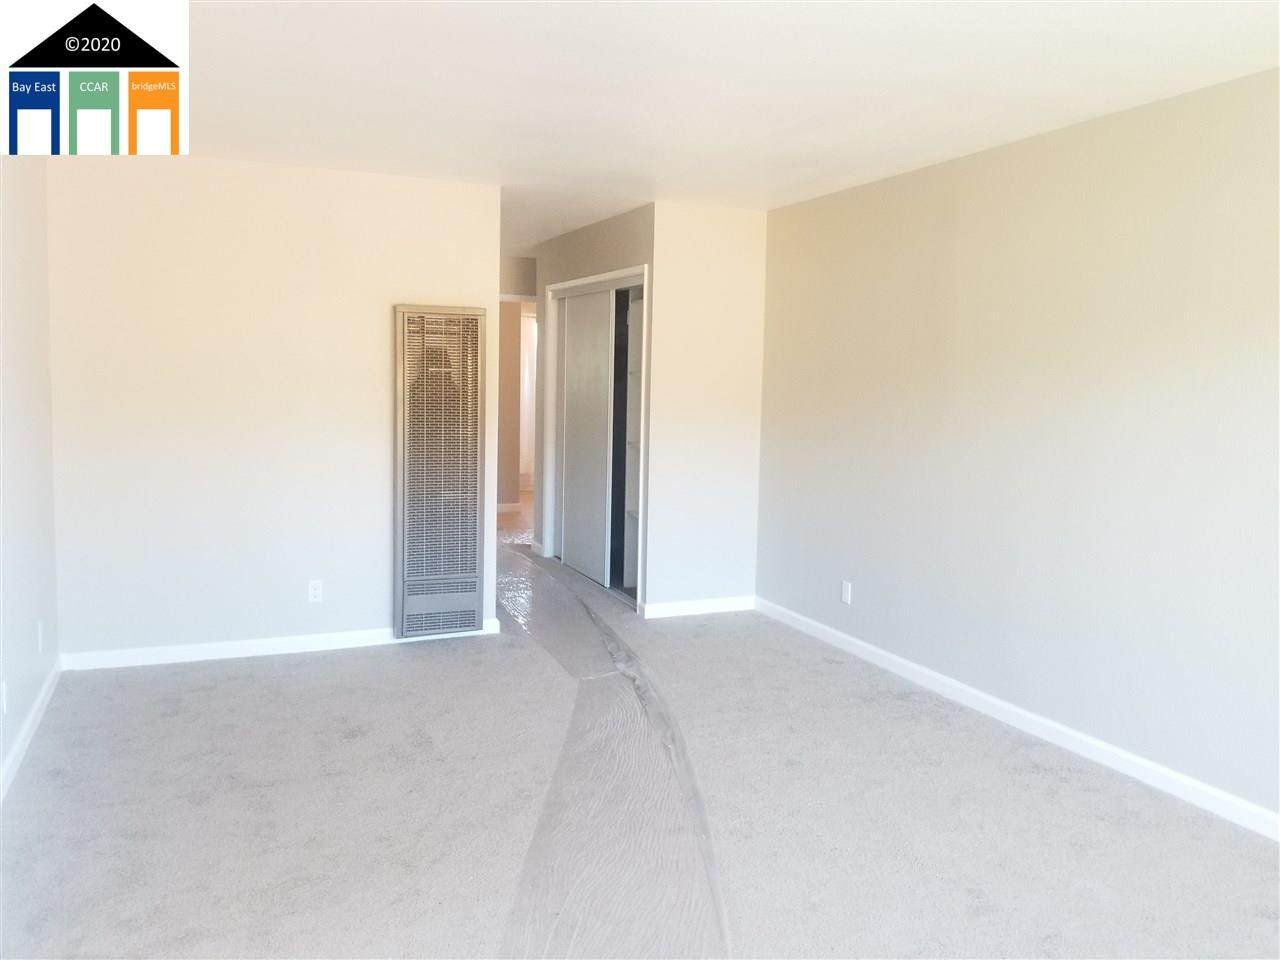 2650 109Th Ave - Photo 1